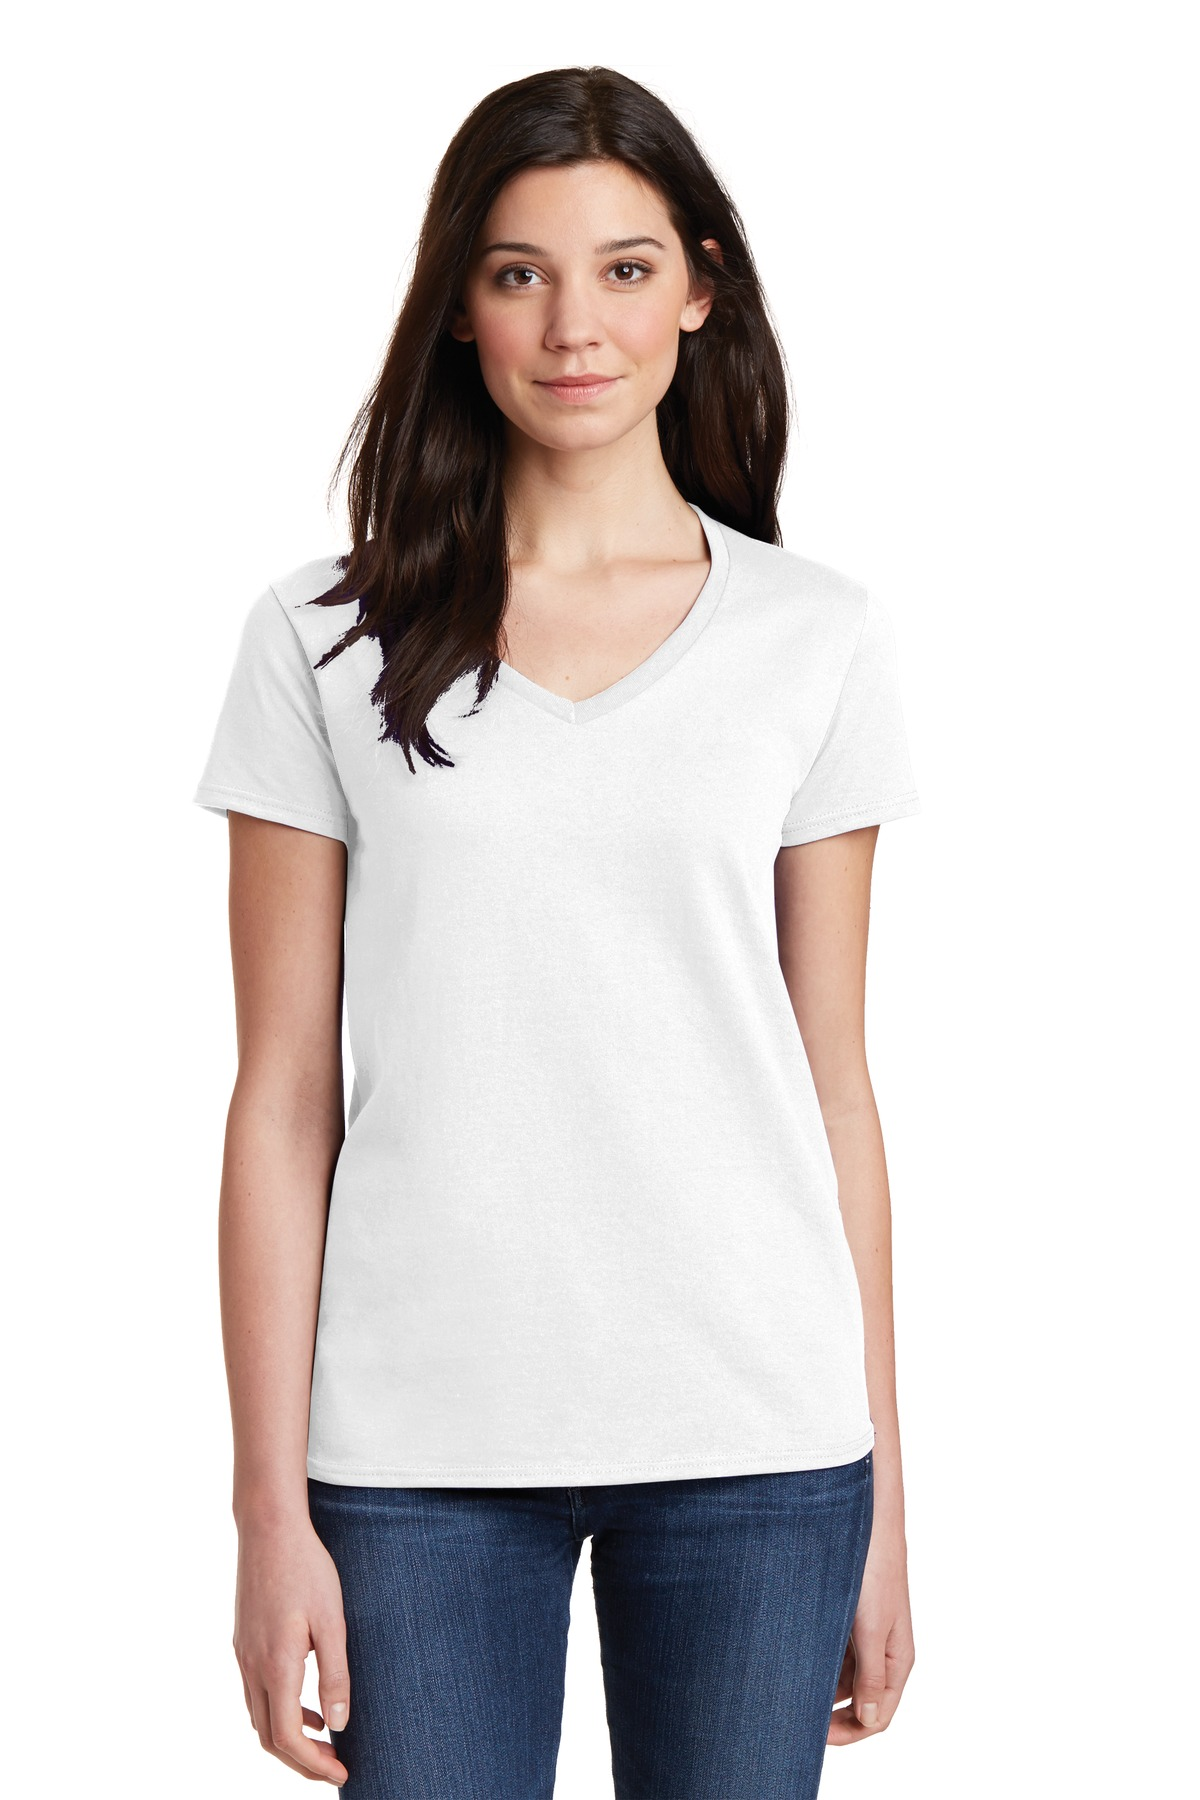 Gildan Ladies Heavy Cotton 100% Cotton V-Neck T-Shirt. 5V00L